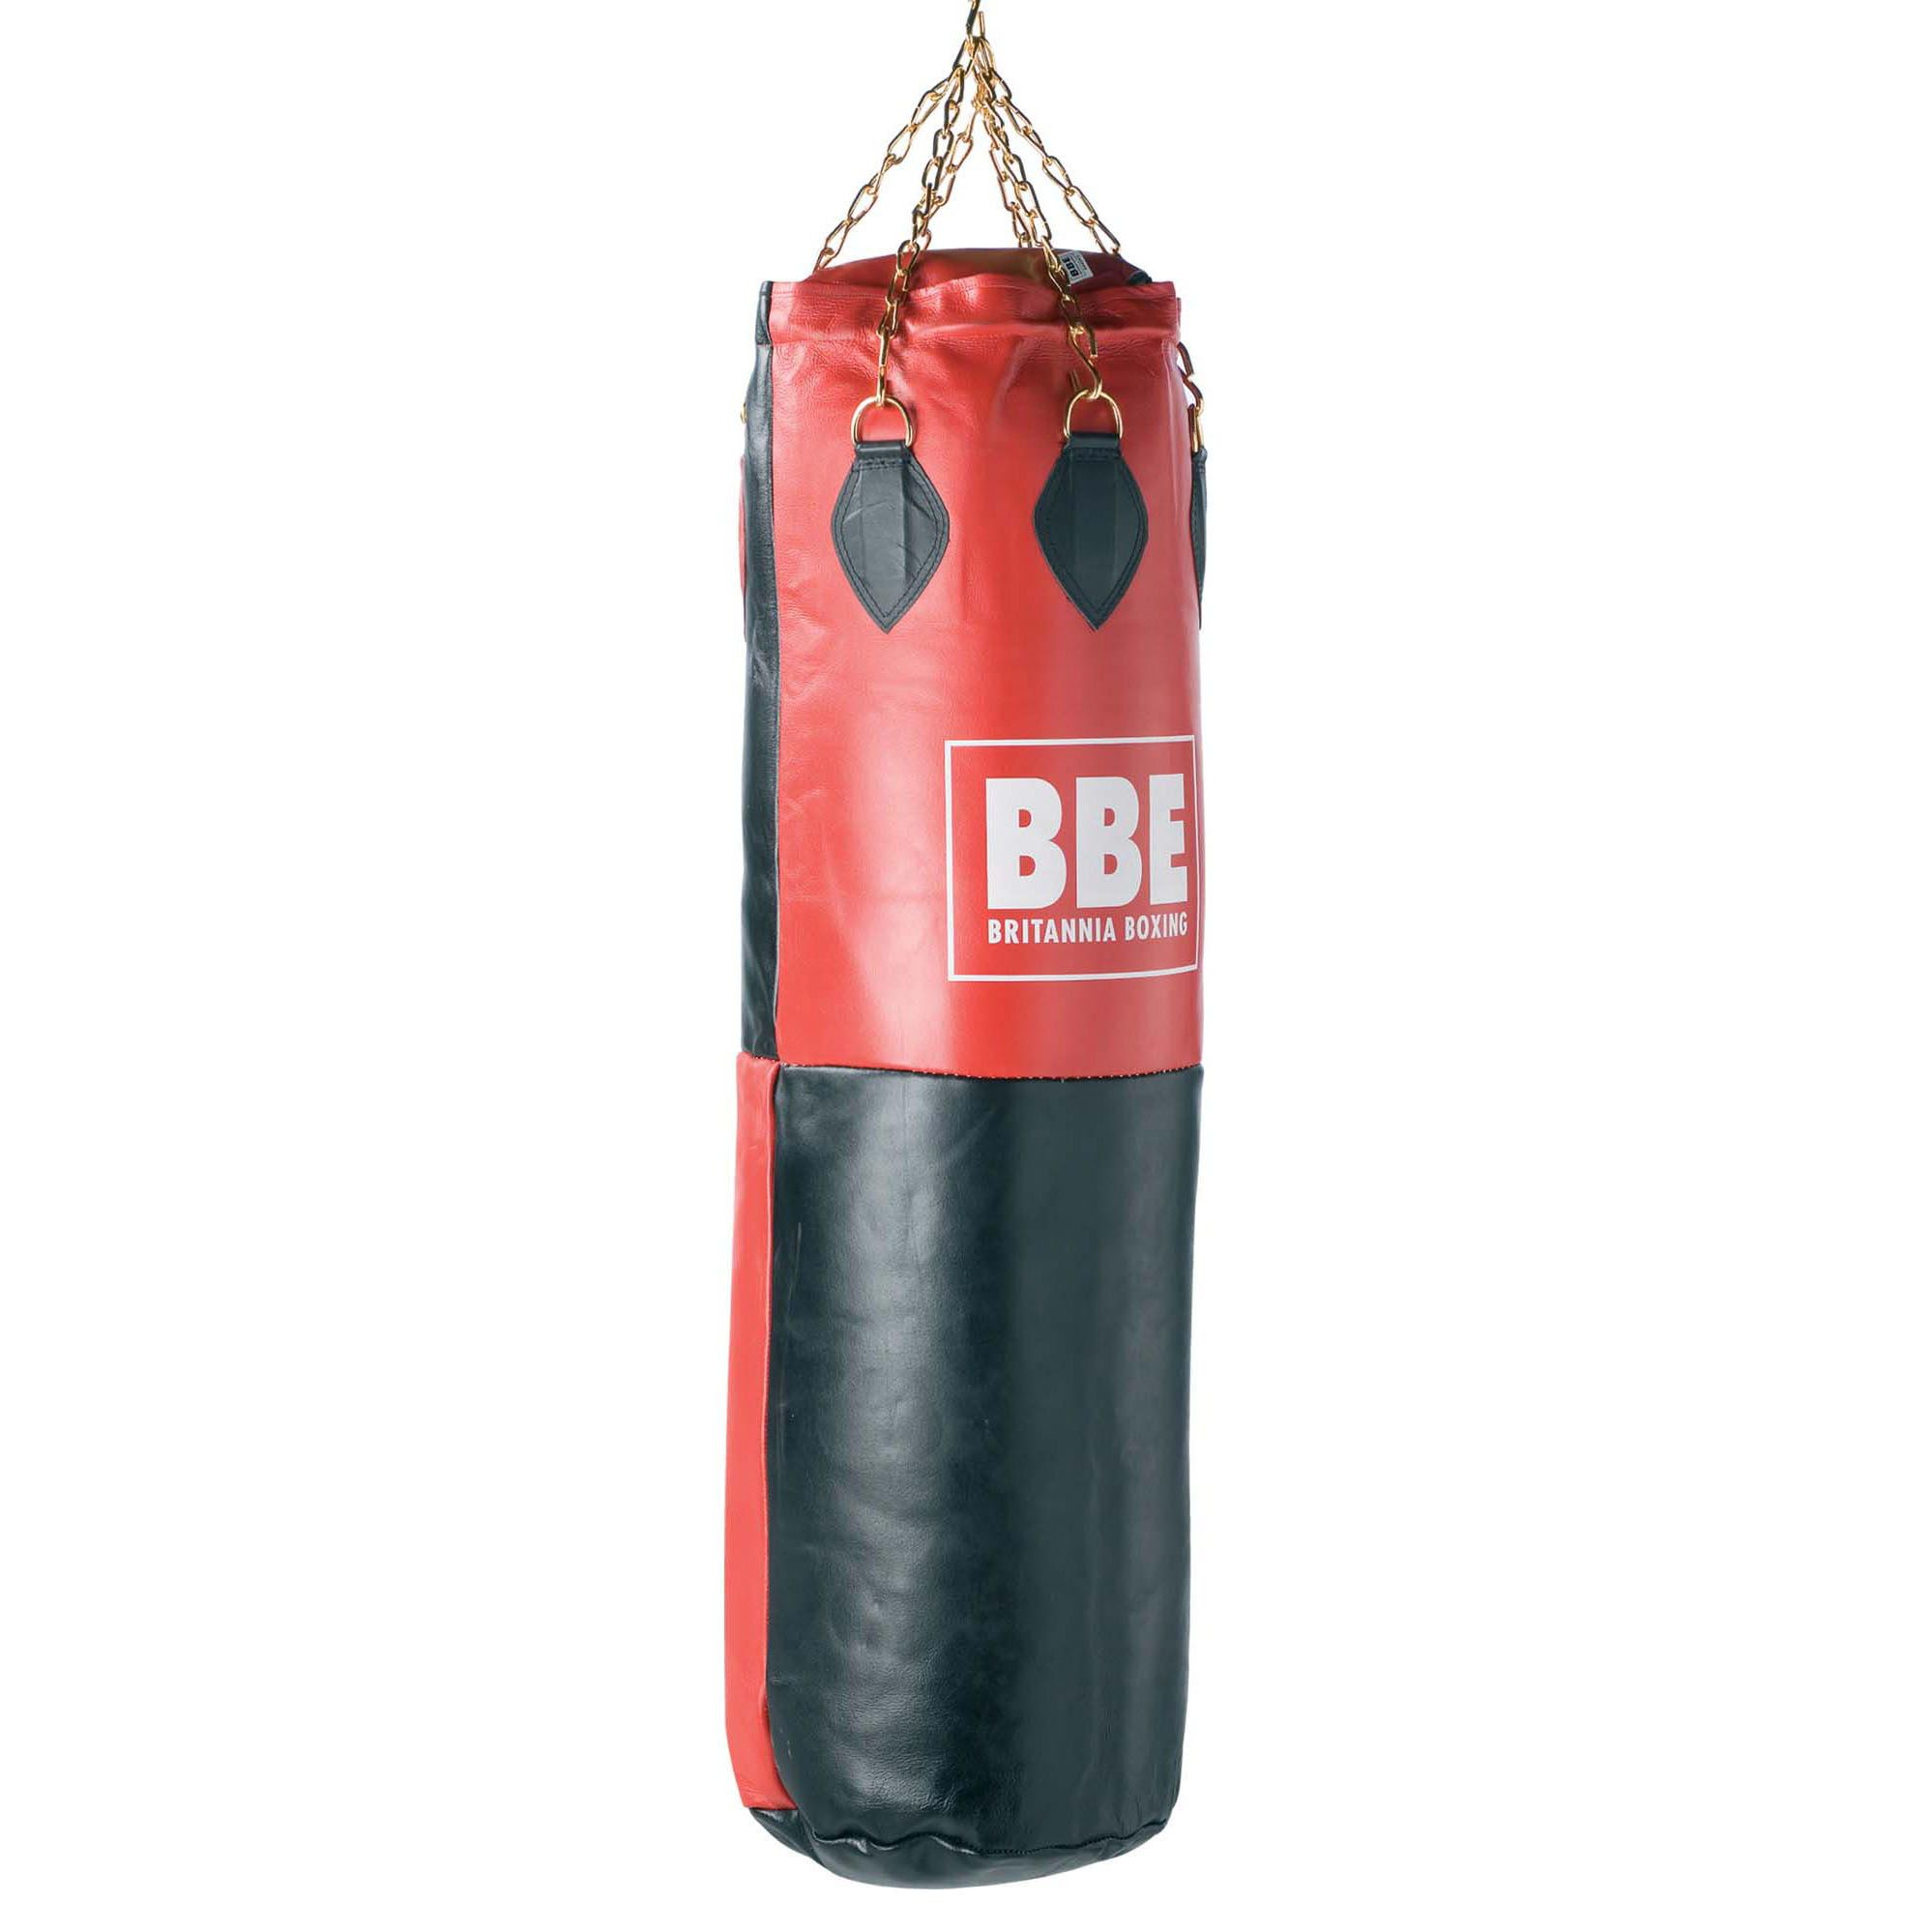 bbe club 4ft leather impact punch bag